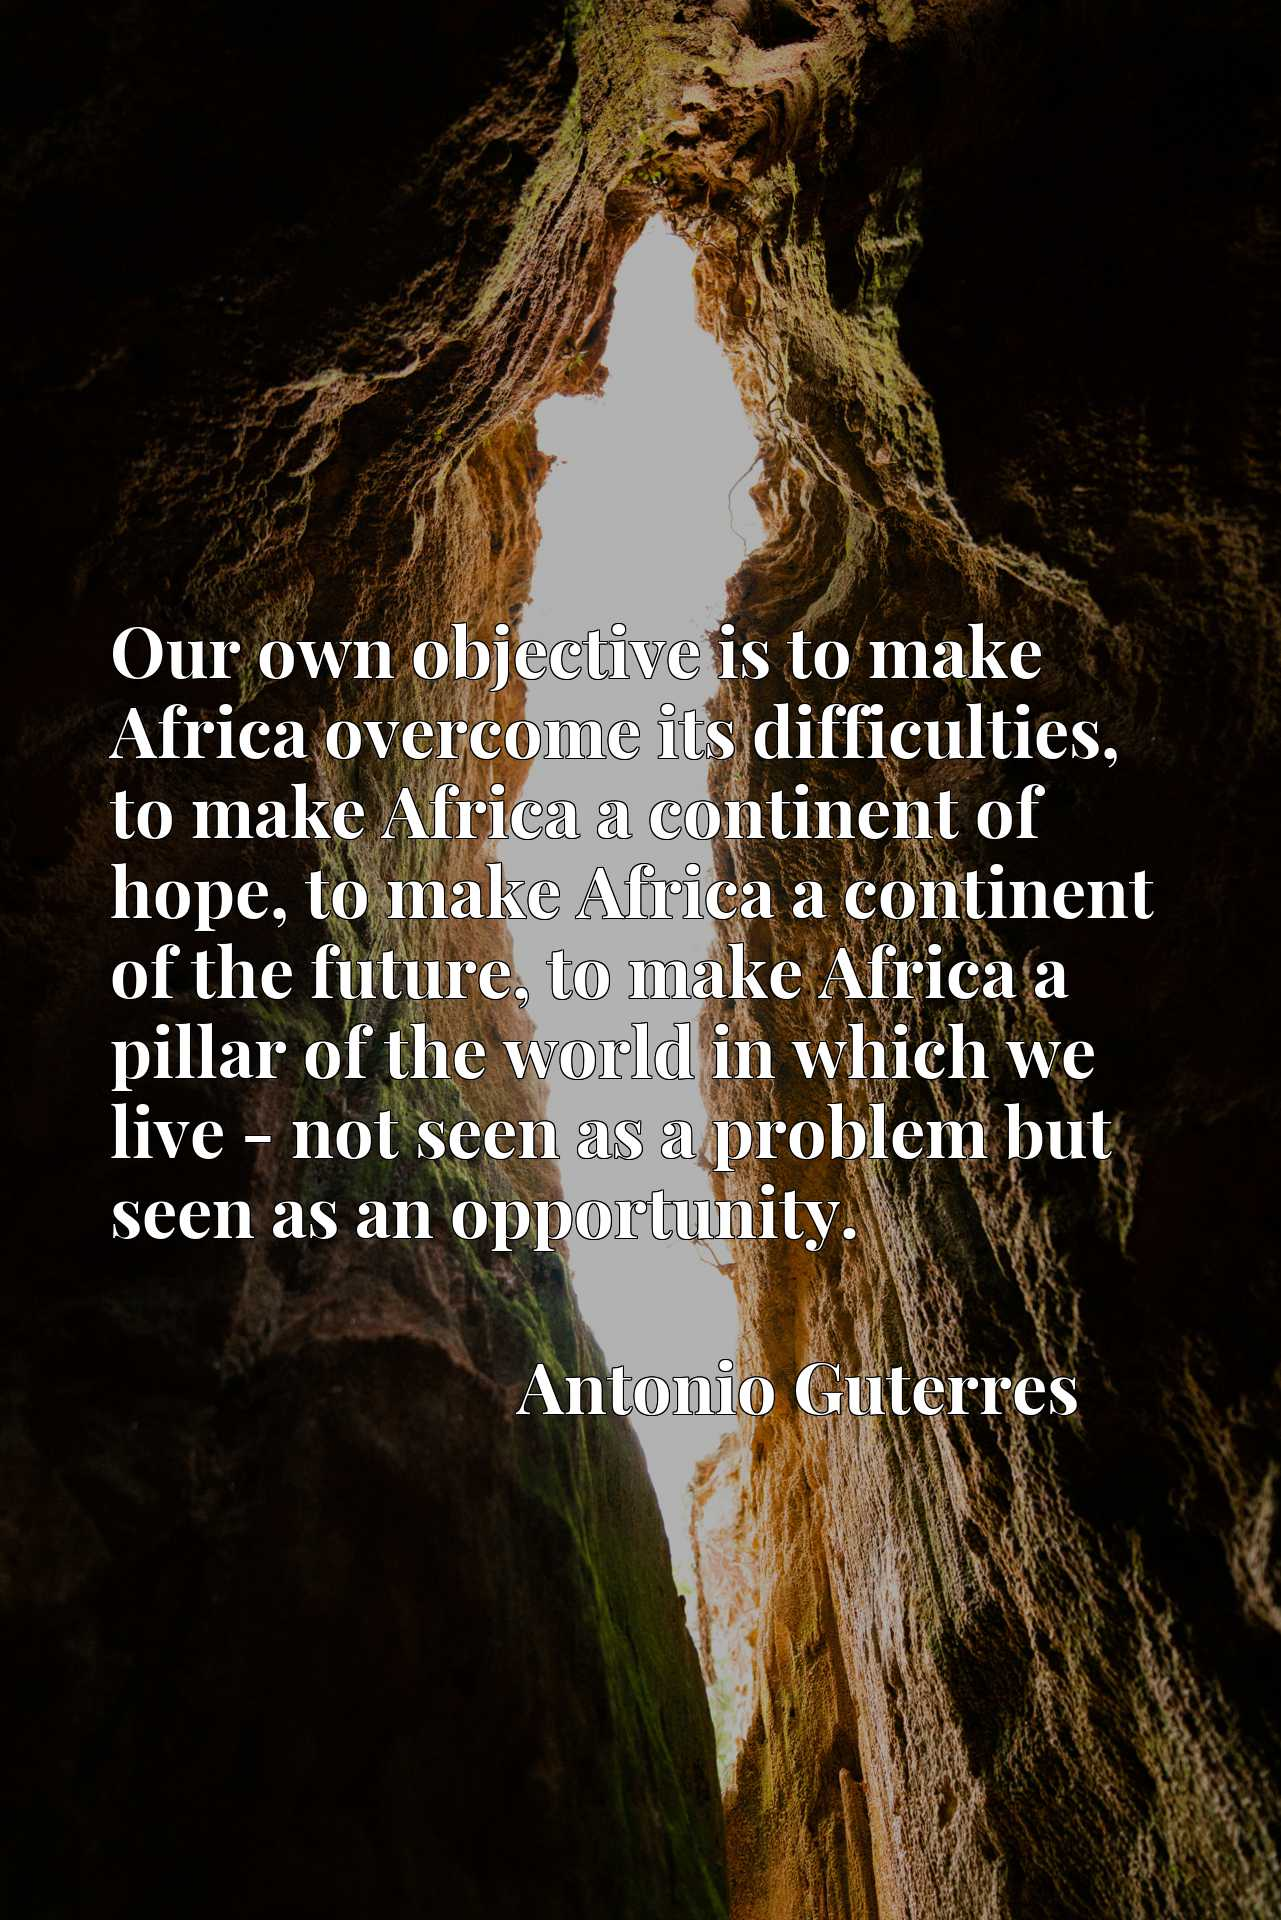 Our own objective is to make Africa overcome its difficulties, to make Africa a continent of hope, to make Africa a continent of the future, to make Africa a pillar of the world in which we live - not seen as a problem but seen as an opportunity.